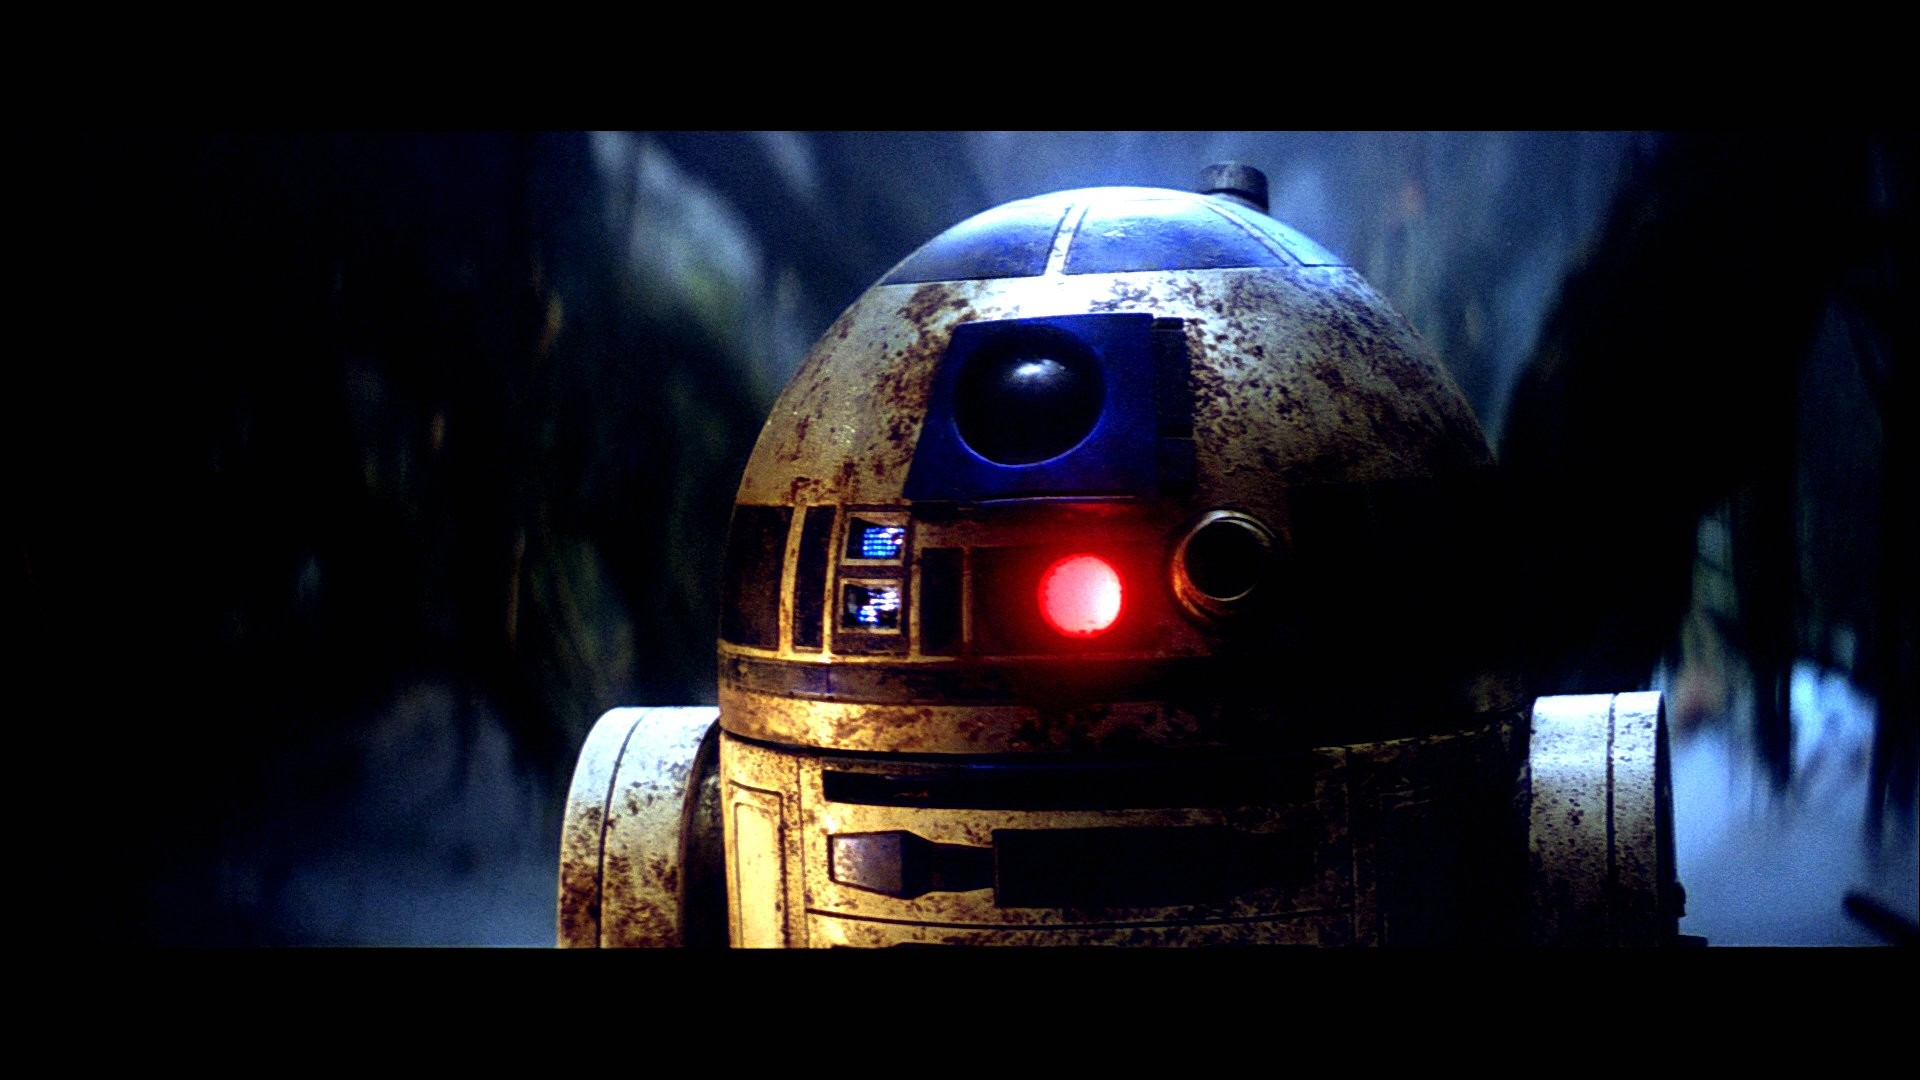 Iphone 5 Wallpaper Hd Star Wars R2d2 Wallpaper 183 ① Download Free Hd Backgrounds For Desktop